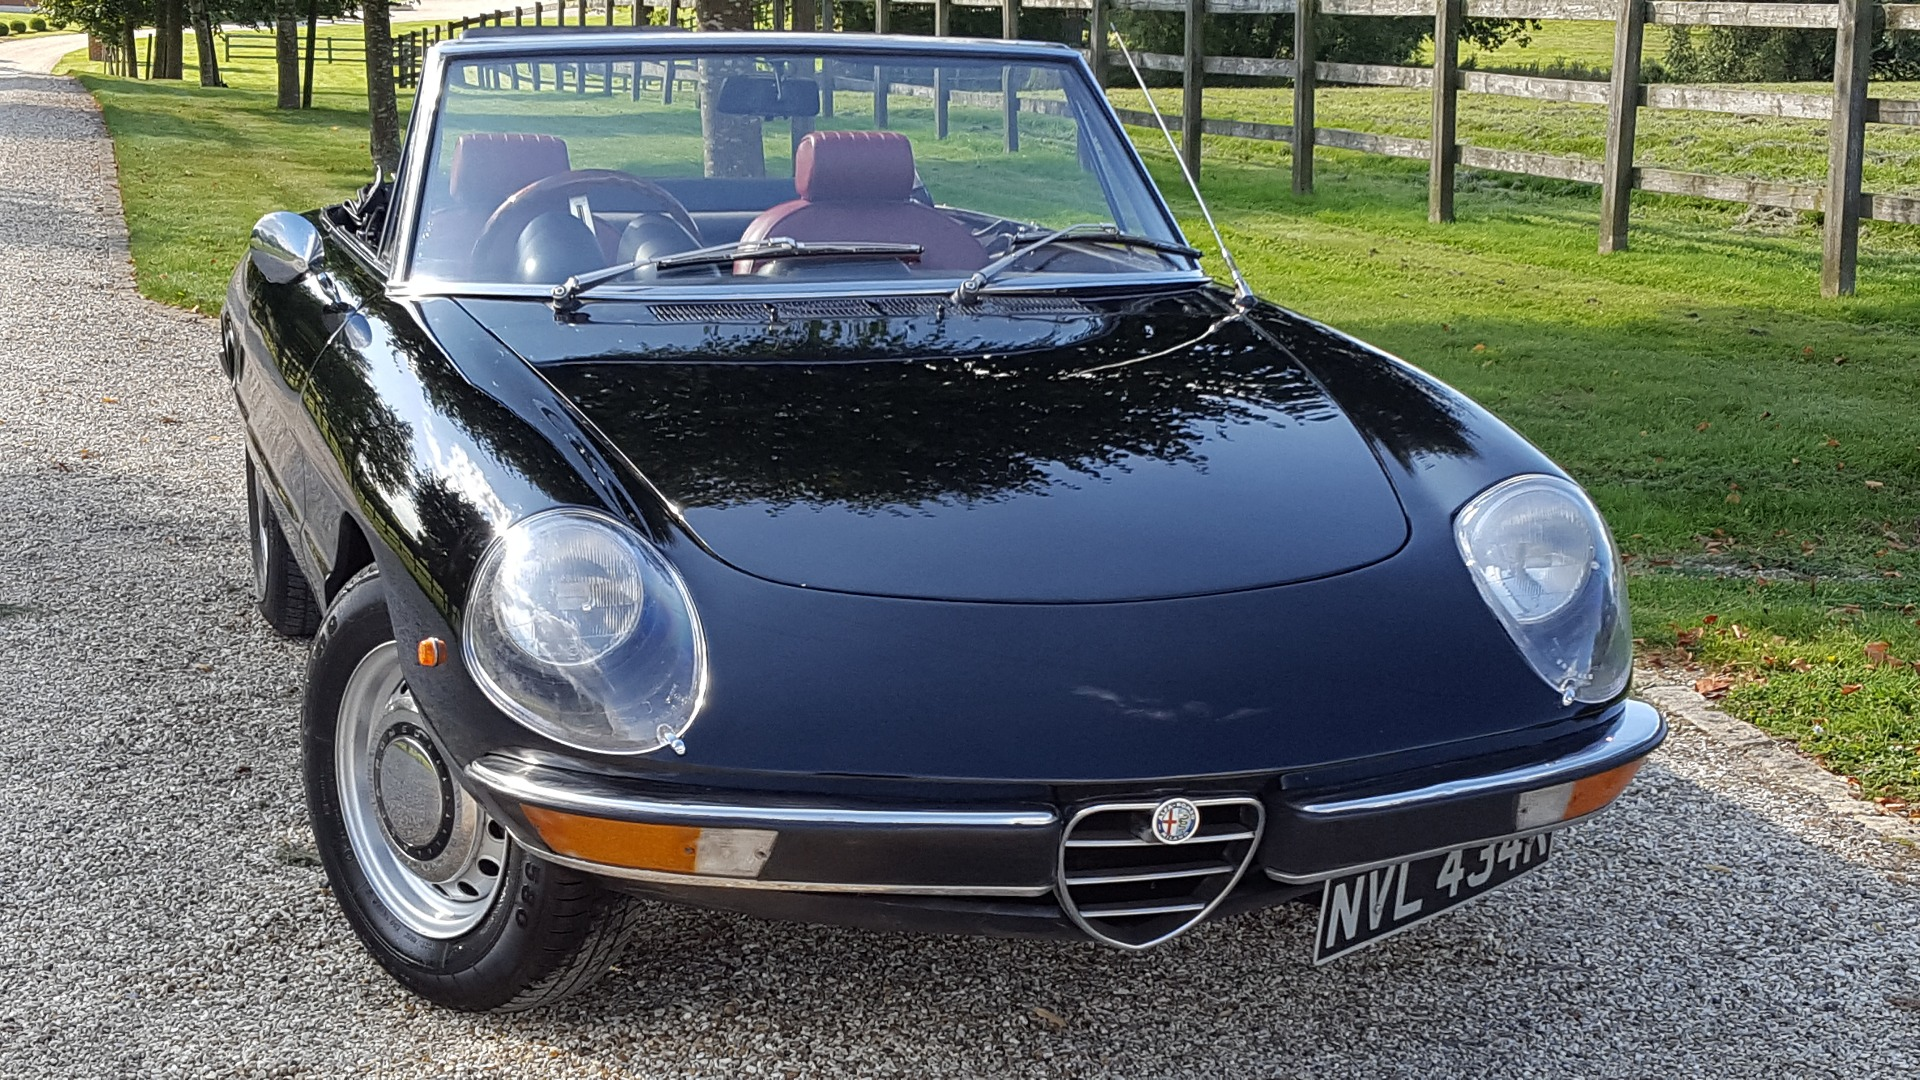 Used ALFA ROMEO SPIDER SPIDER BLACK Convertible St Choice - Alfa romeo spider 1974 for sale